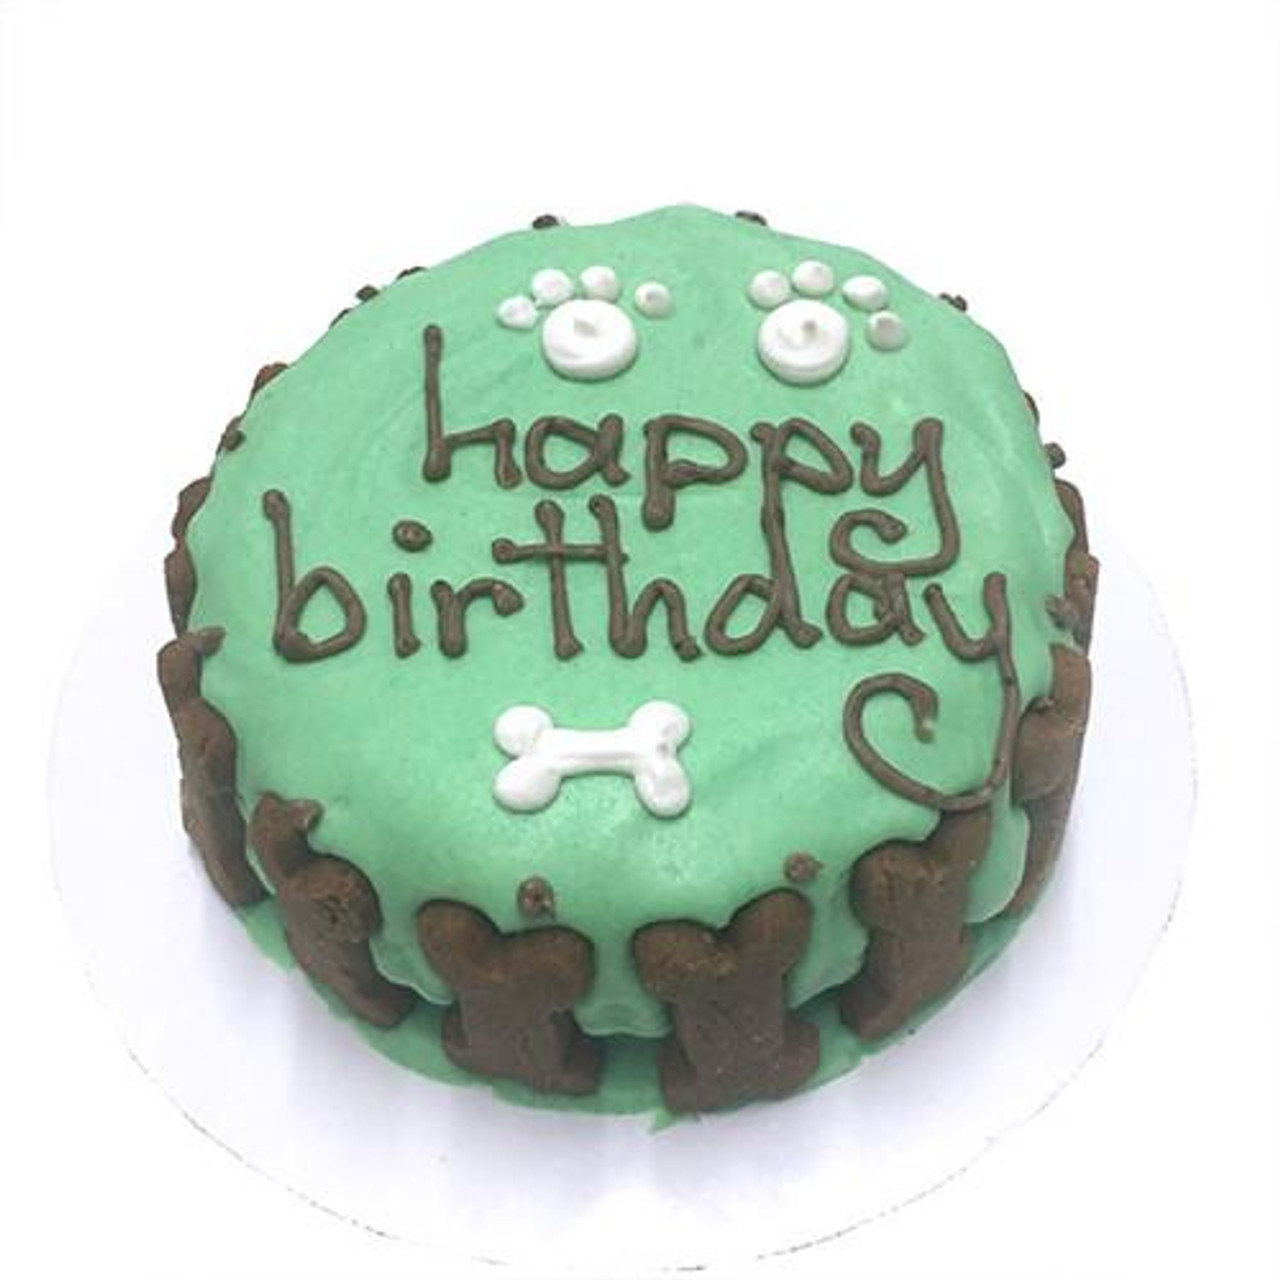 Swell Customized Dog Birthday Cake Green Organic Dog Treats Funny Birthday Cards Online Aeocydamsfinfo